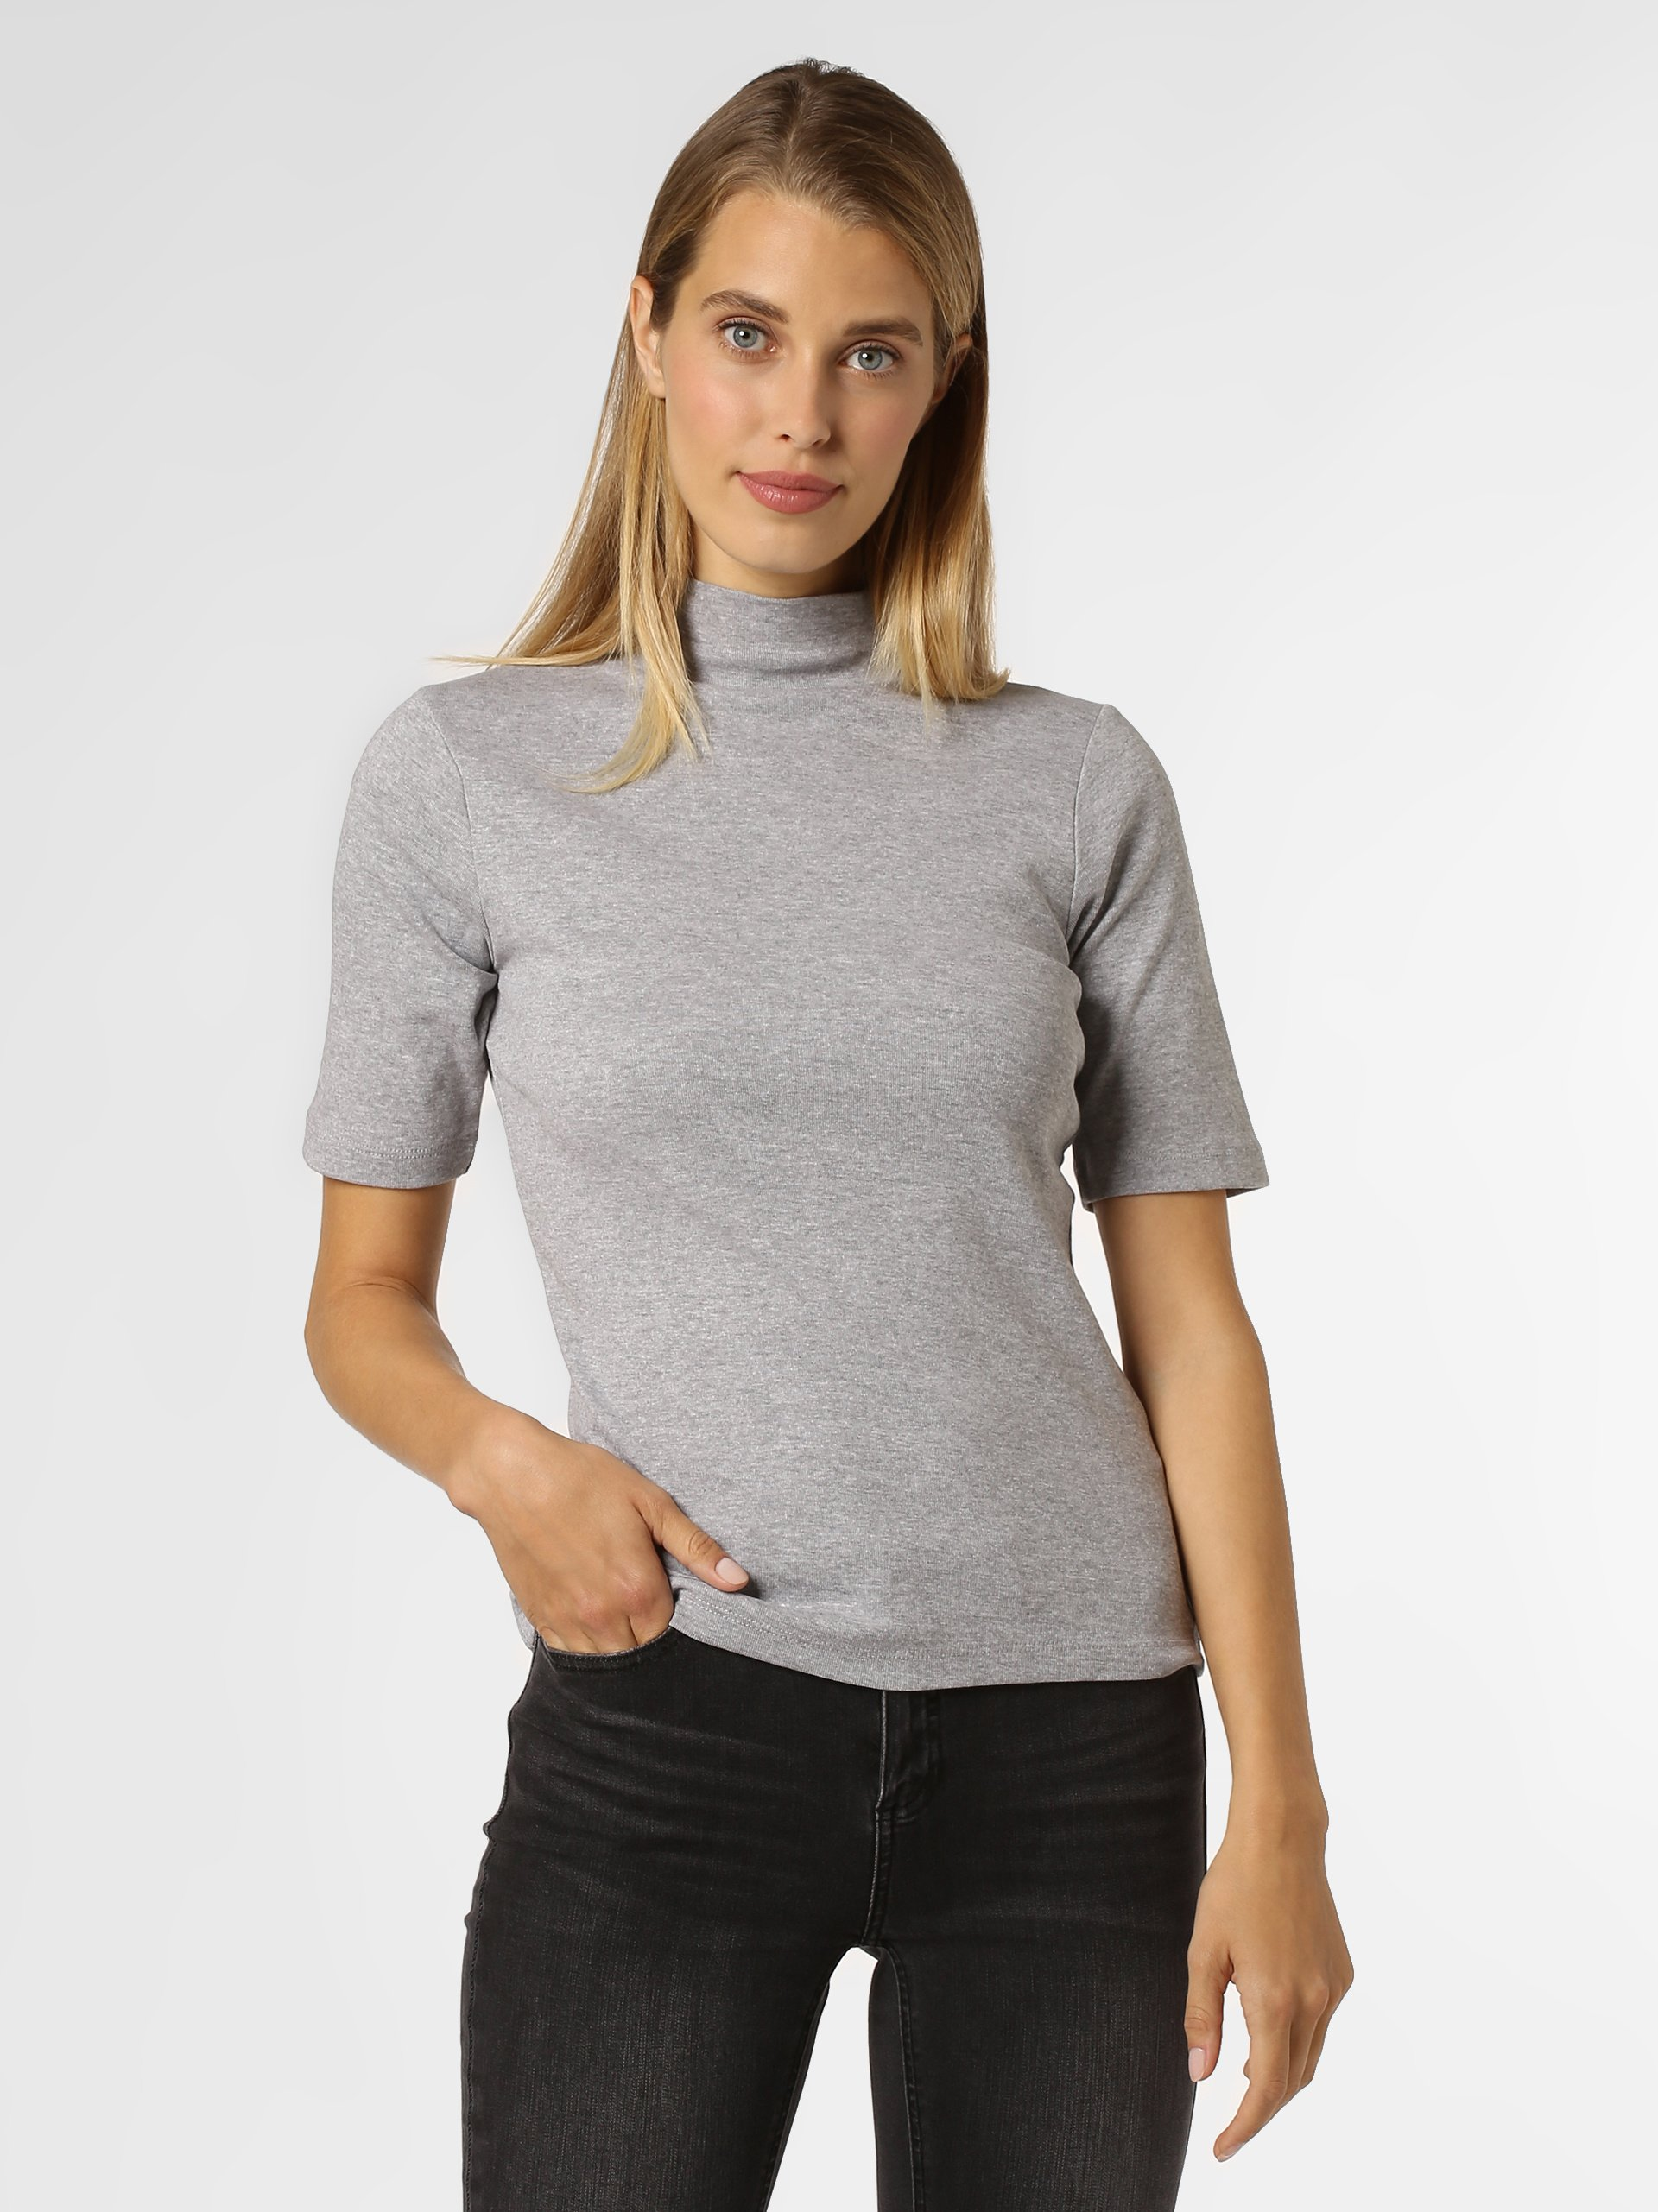 brookshire Damen Shirt